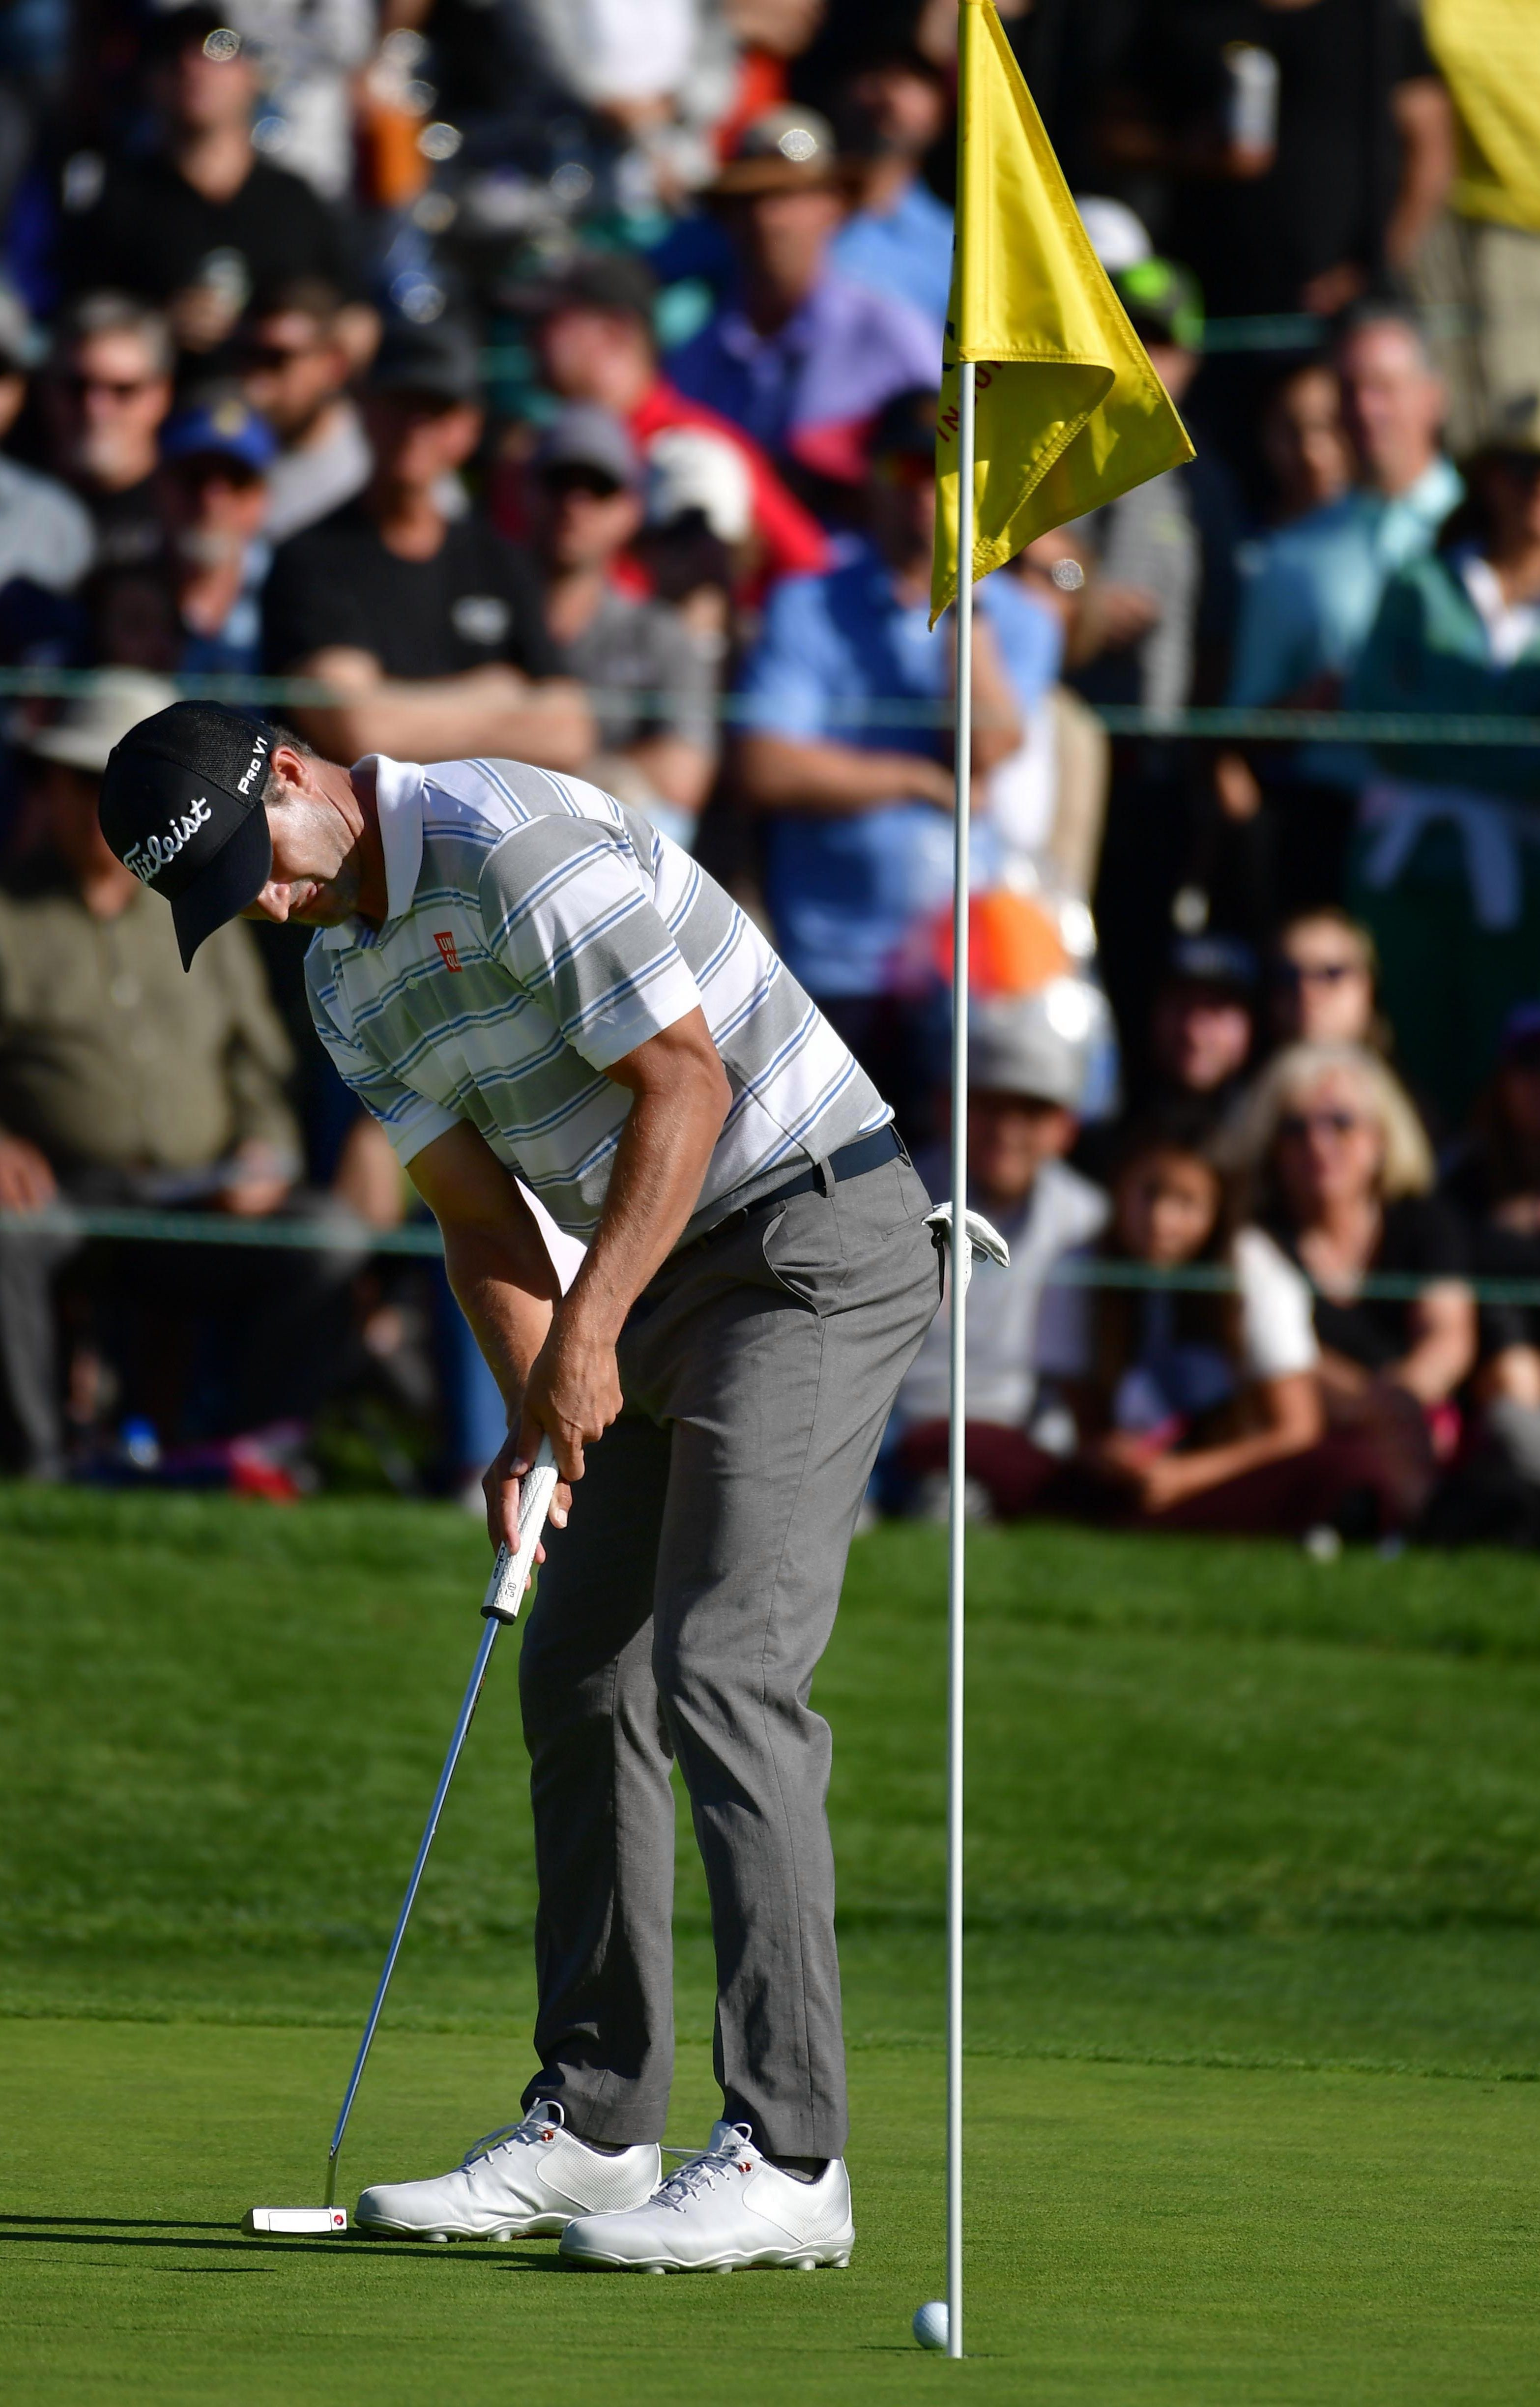 Adam Scott has been putting with the flagstick in so far in 2019